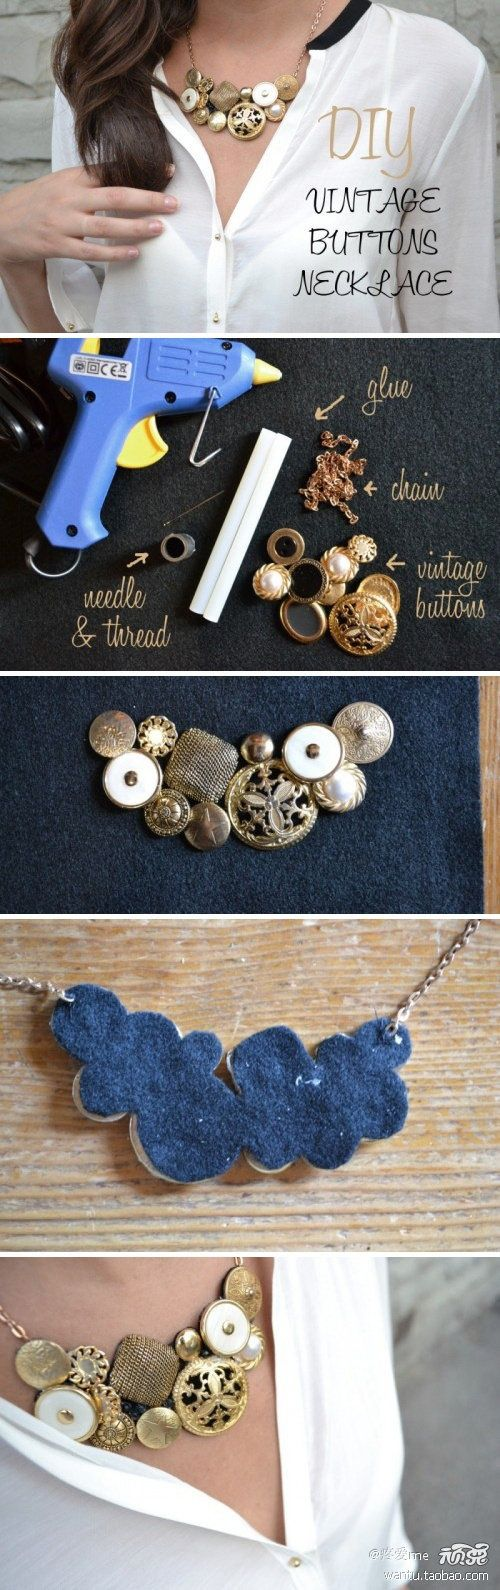 DIY: Vintage Buttons Necklace